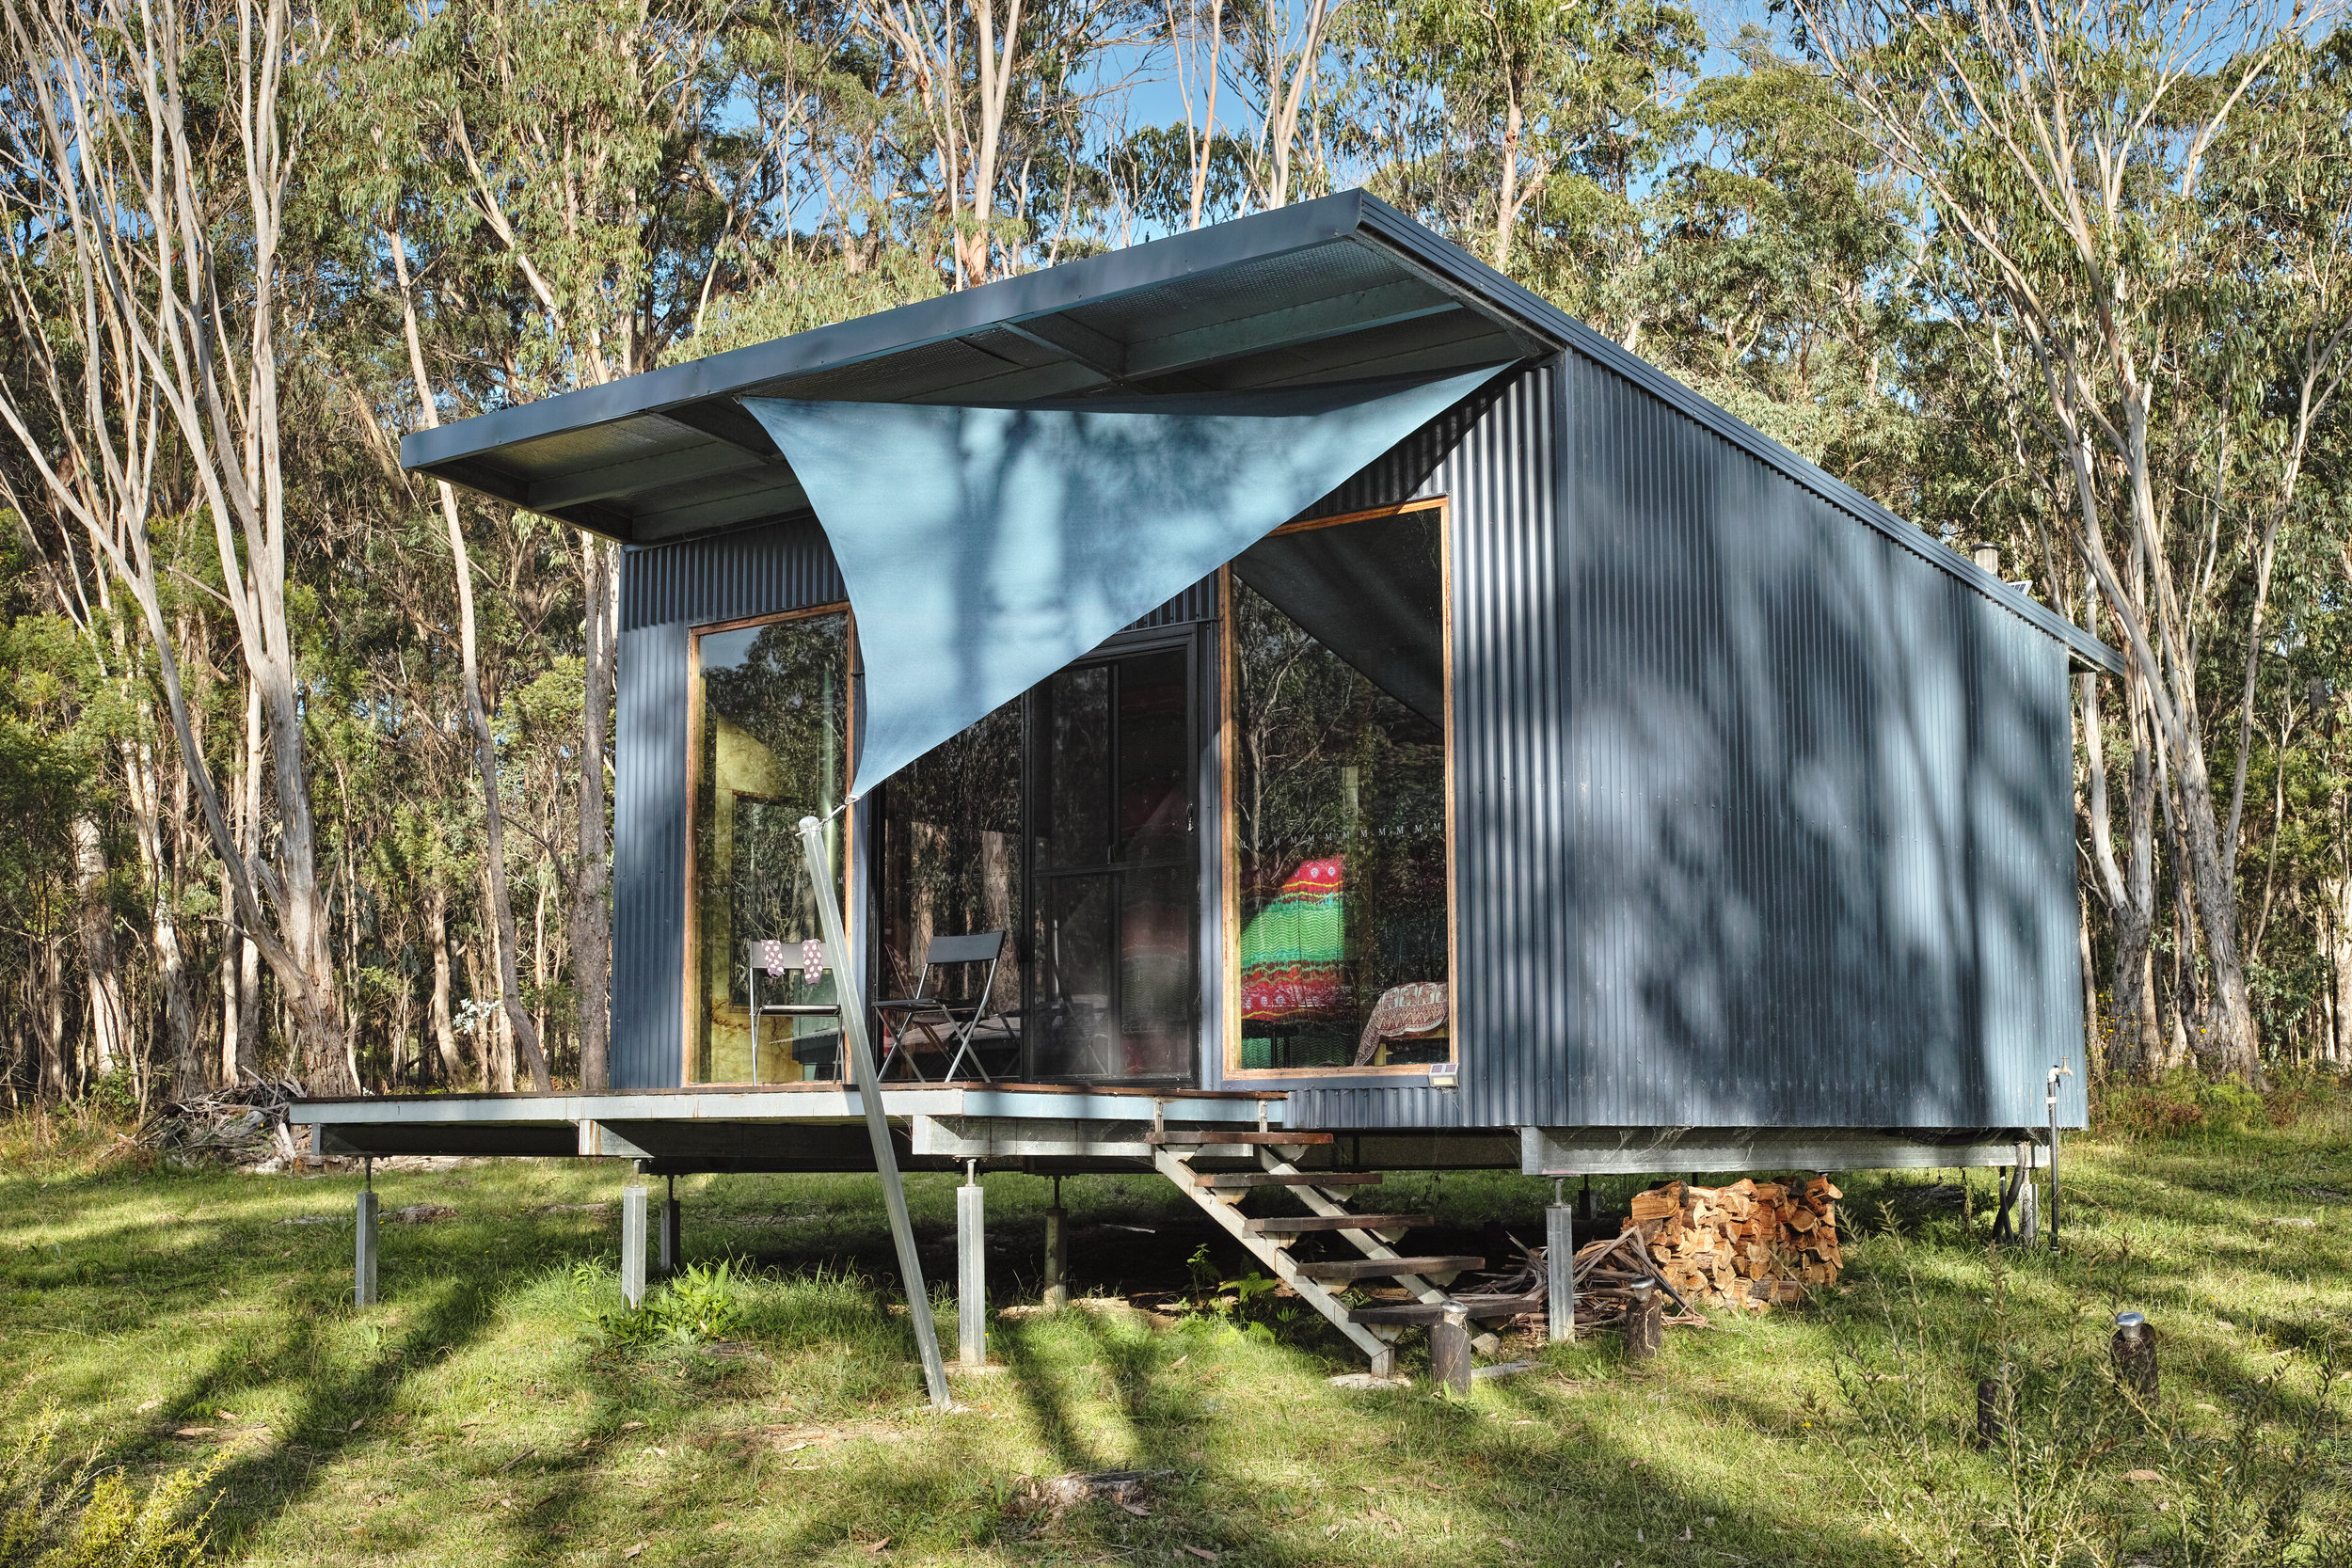 all our cabins are elegant,spacious yet cosy, with ensuite,comfortably sleeping 1 to 4 guests. Each cabin has a roof sprinkler for fire protection if required, and fire hoses are adjacent, supplied under pressure from our million litre lake.